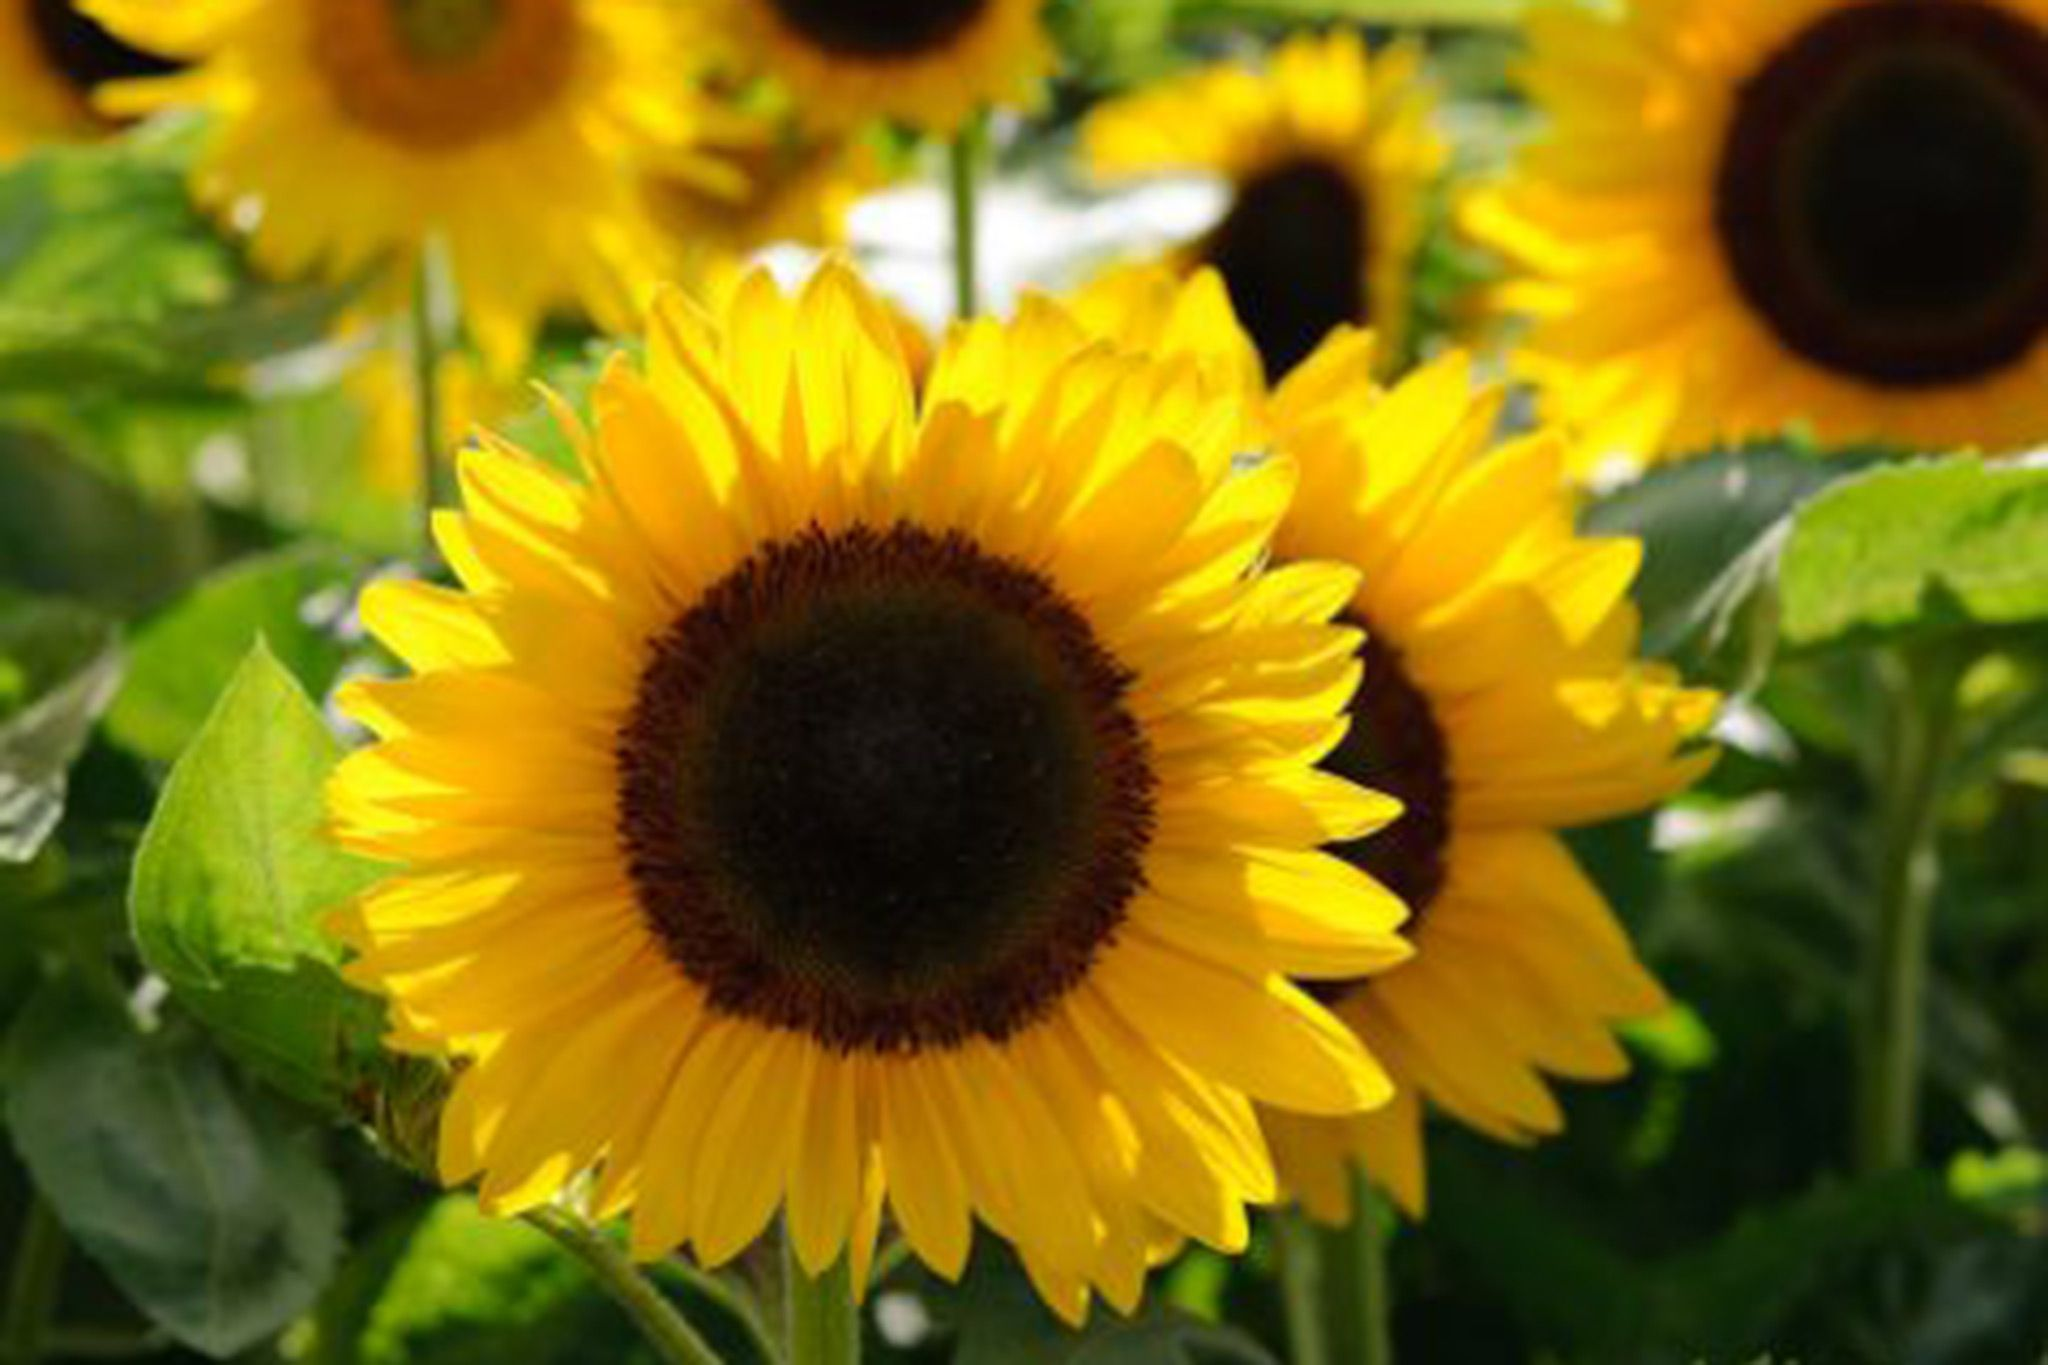 How To Grow Sunflowers From Seed Growing Sunflowers Growing Sunflowers From Seed Sunflower Garden